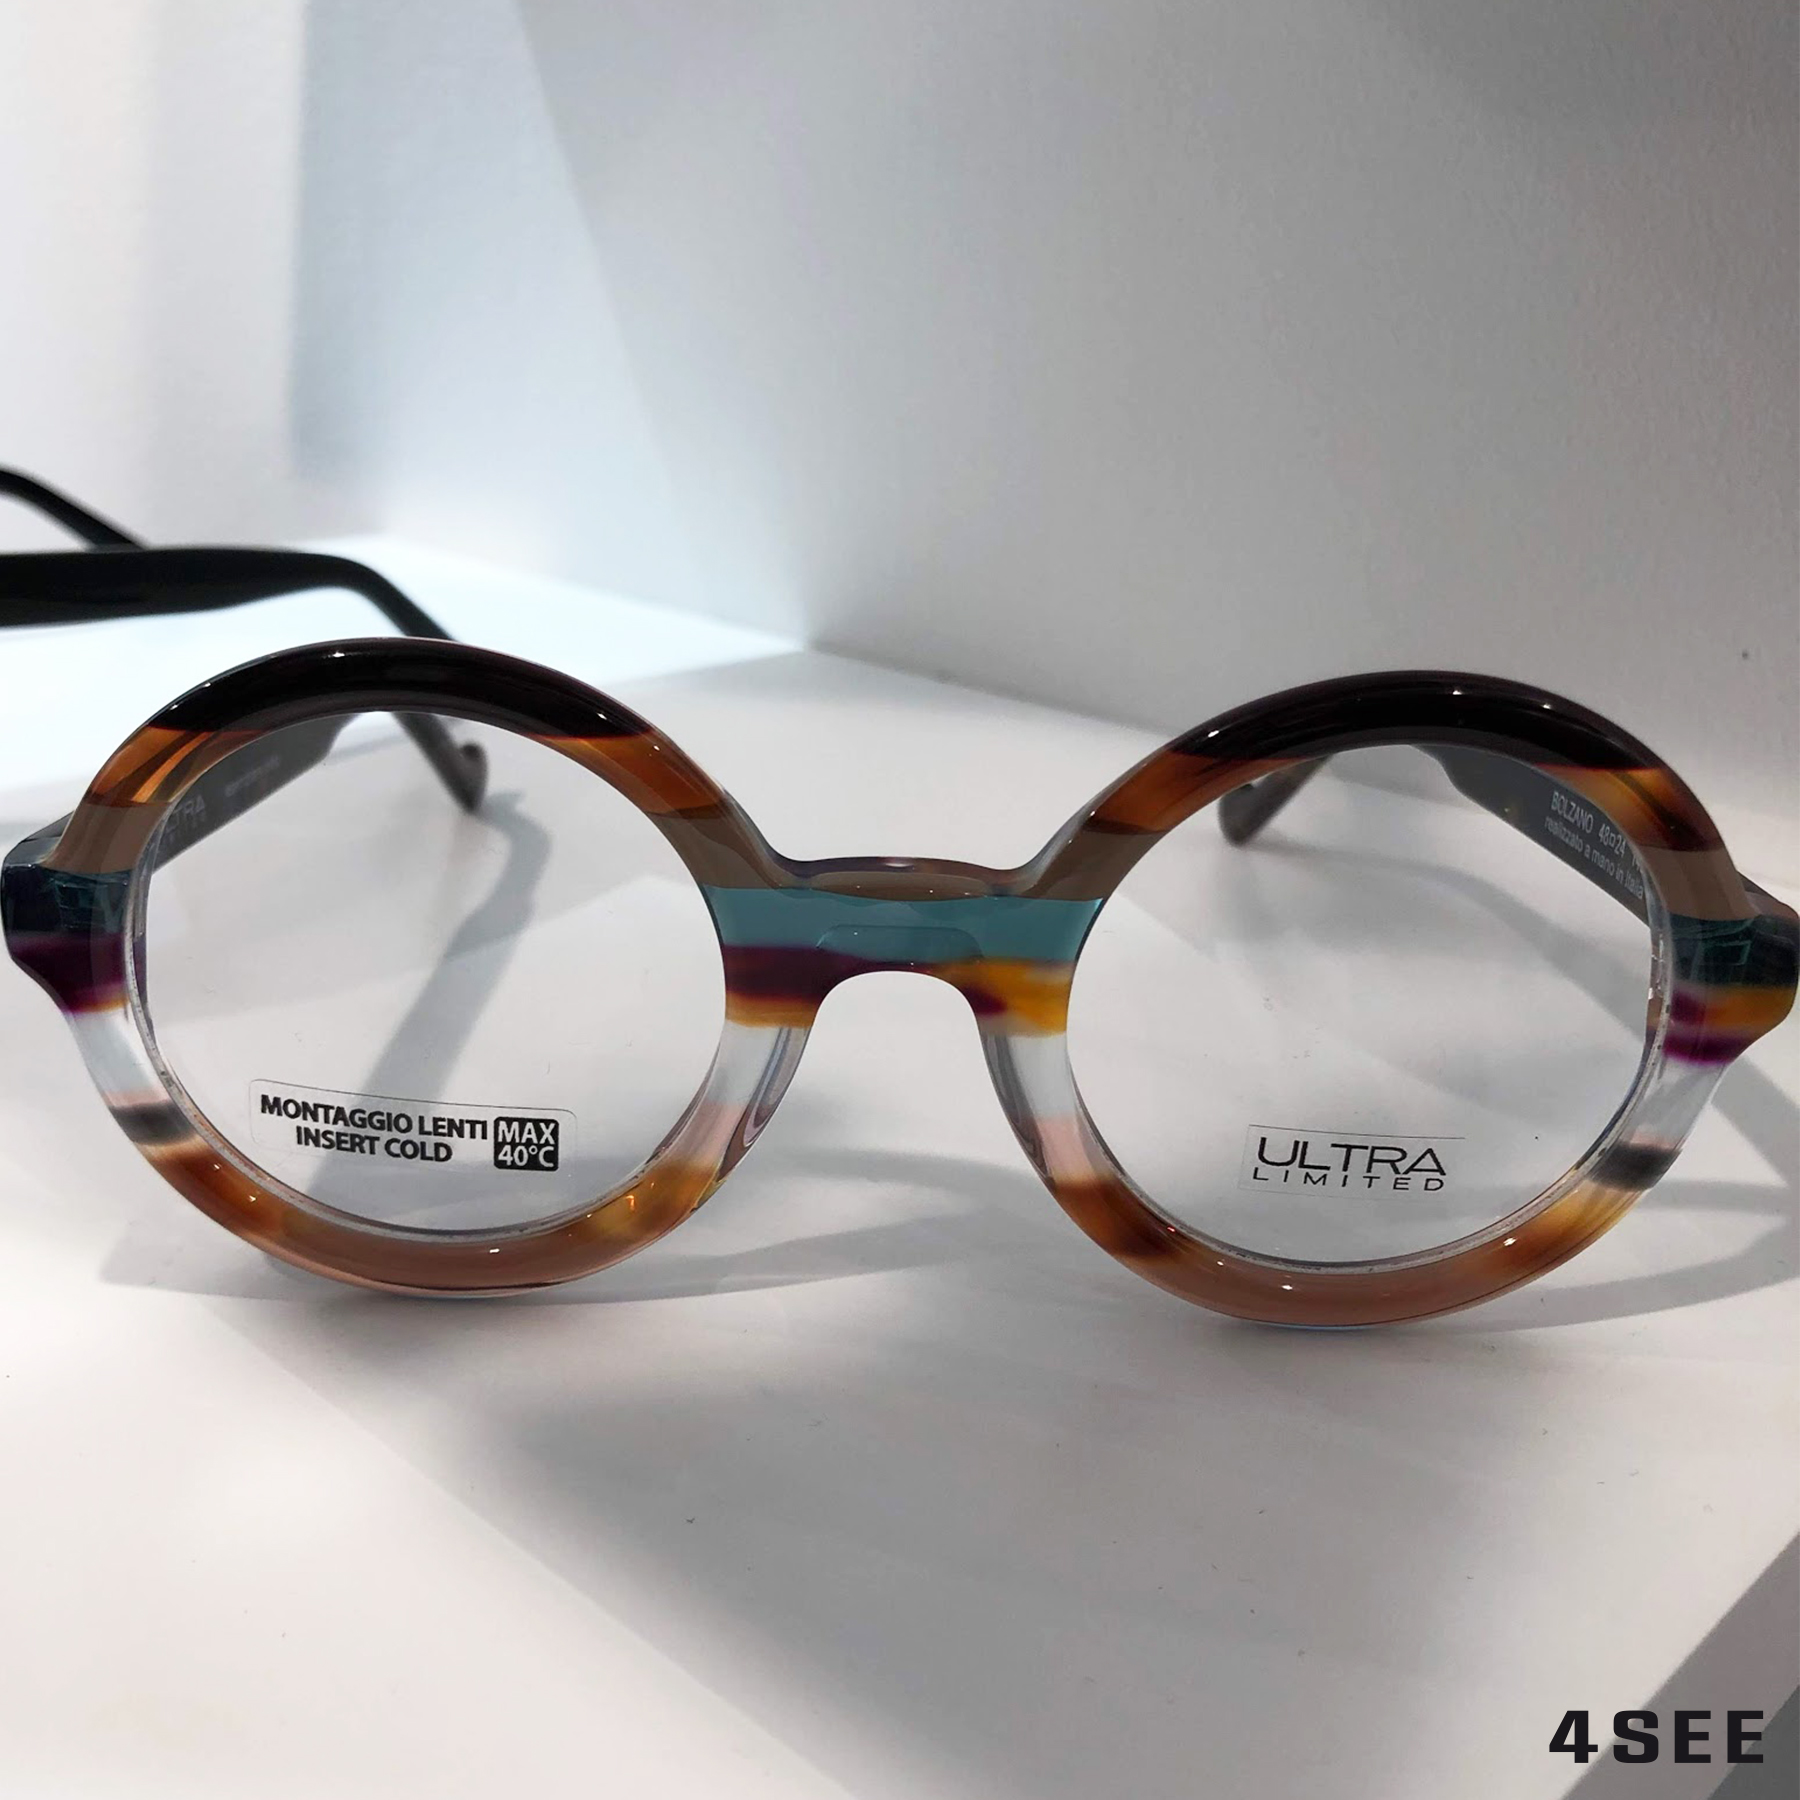 ACETATE ULTRA LIMITED Bolzano